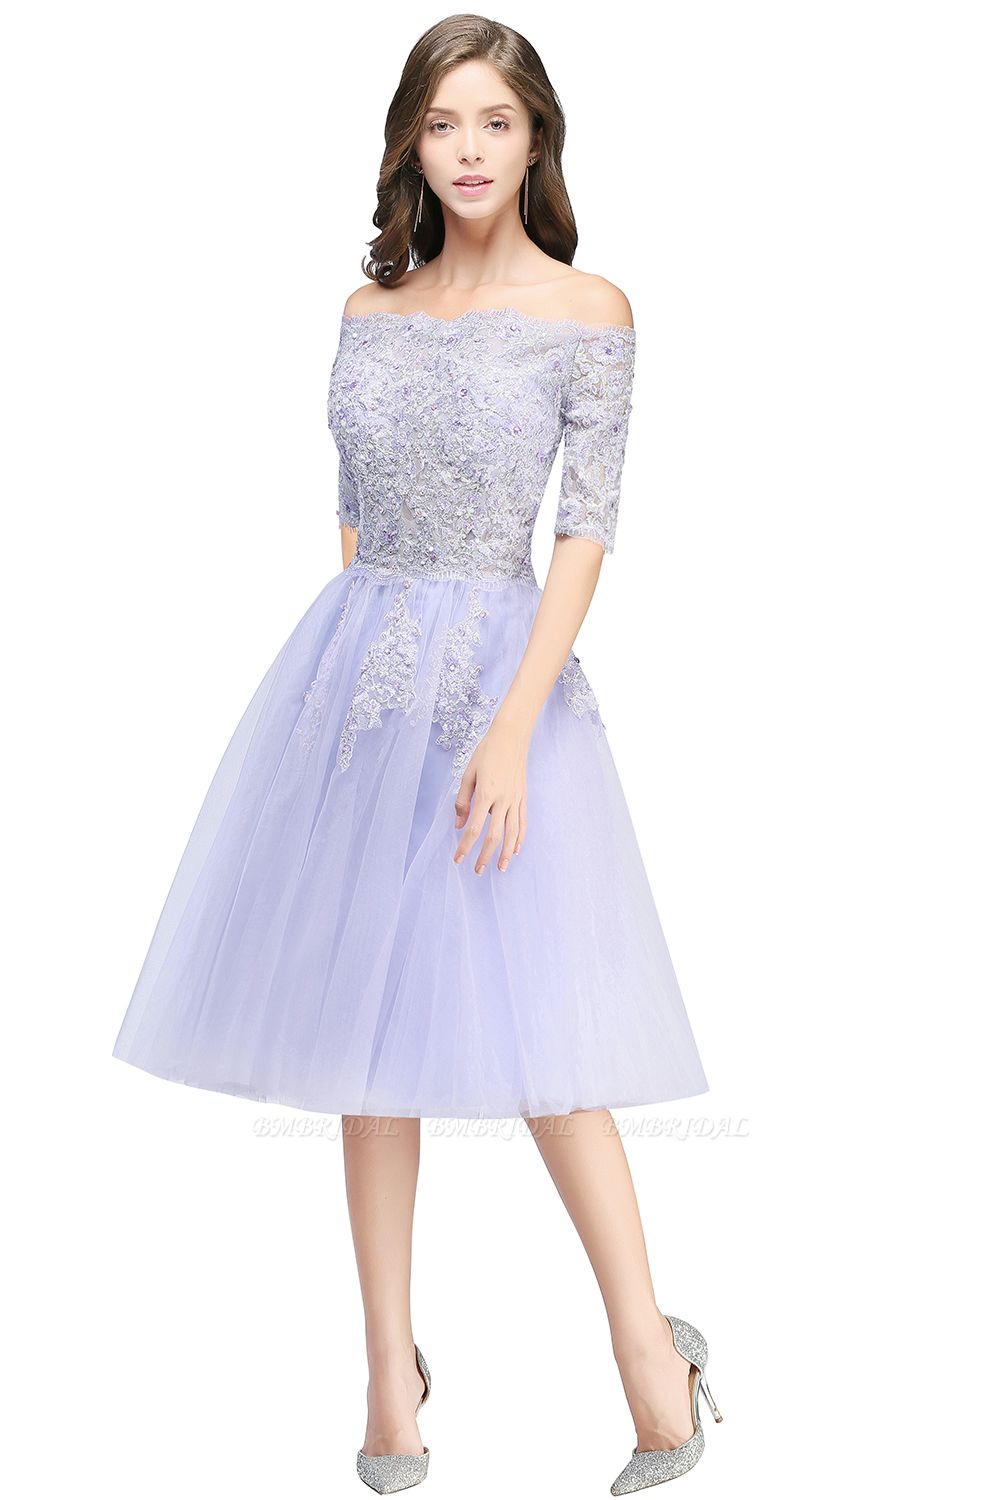 BMbridal A-line Short Sleeves Tulle Lace Flower Girl Dress